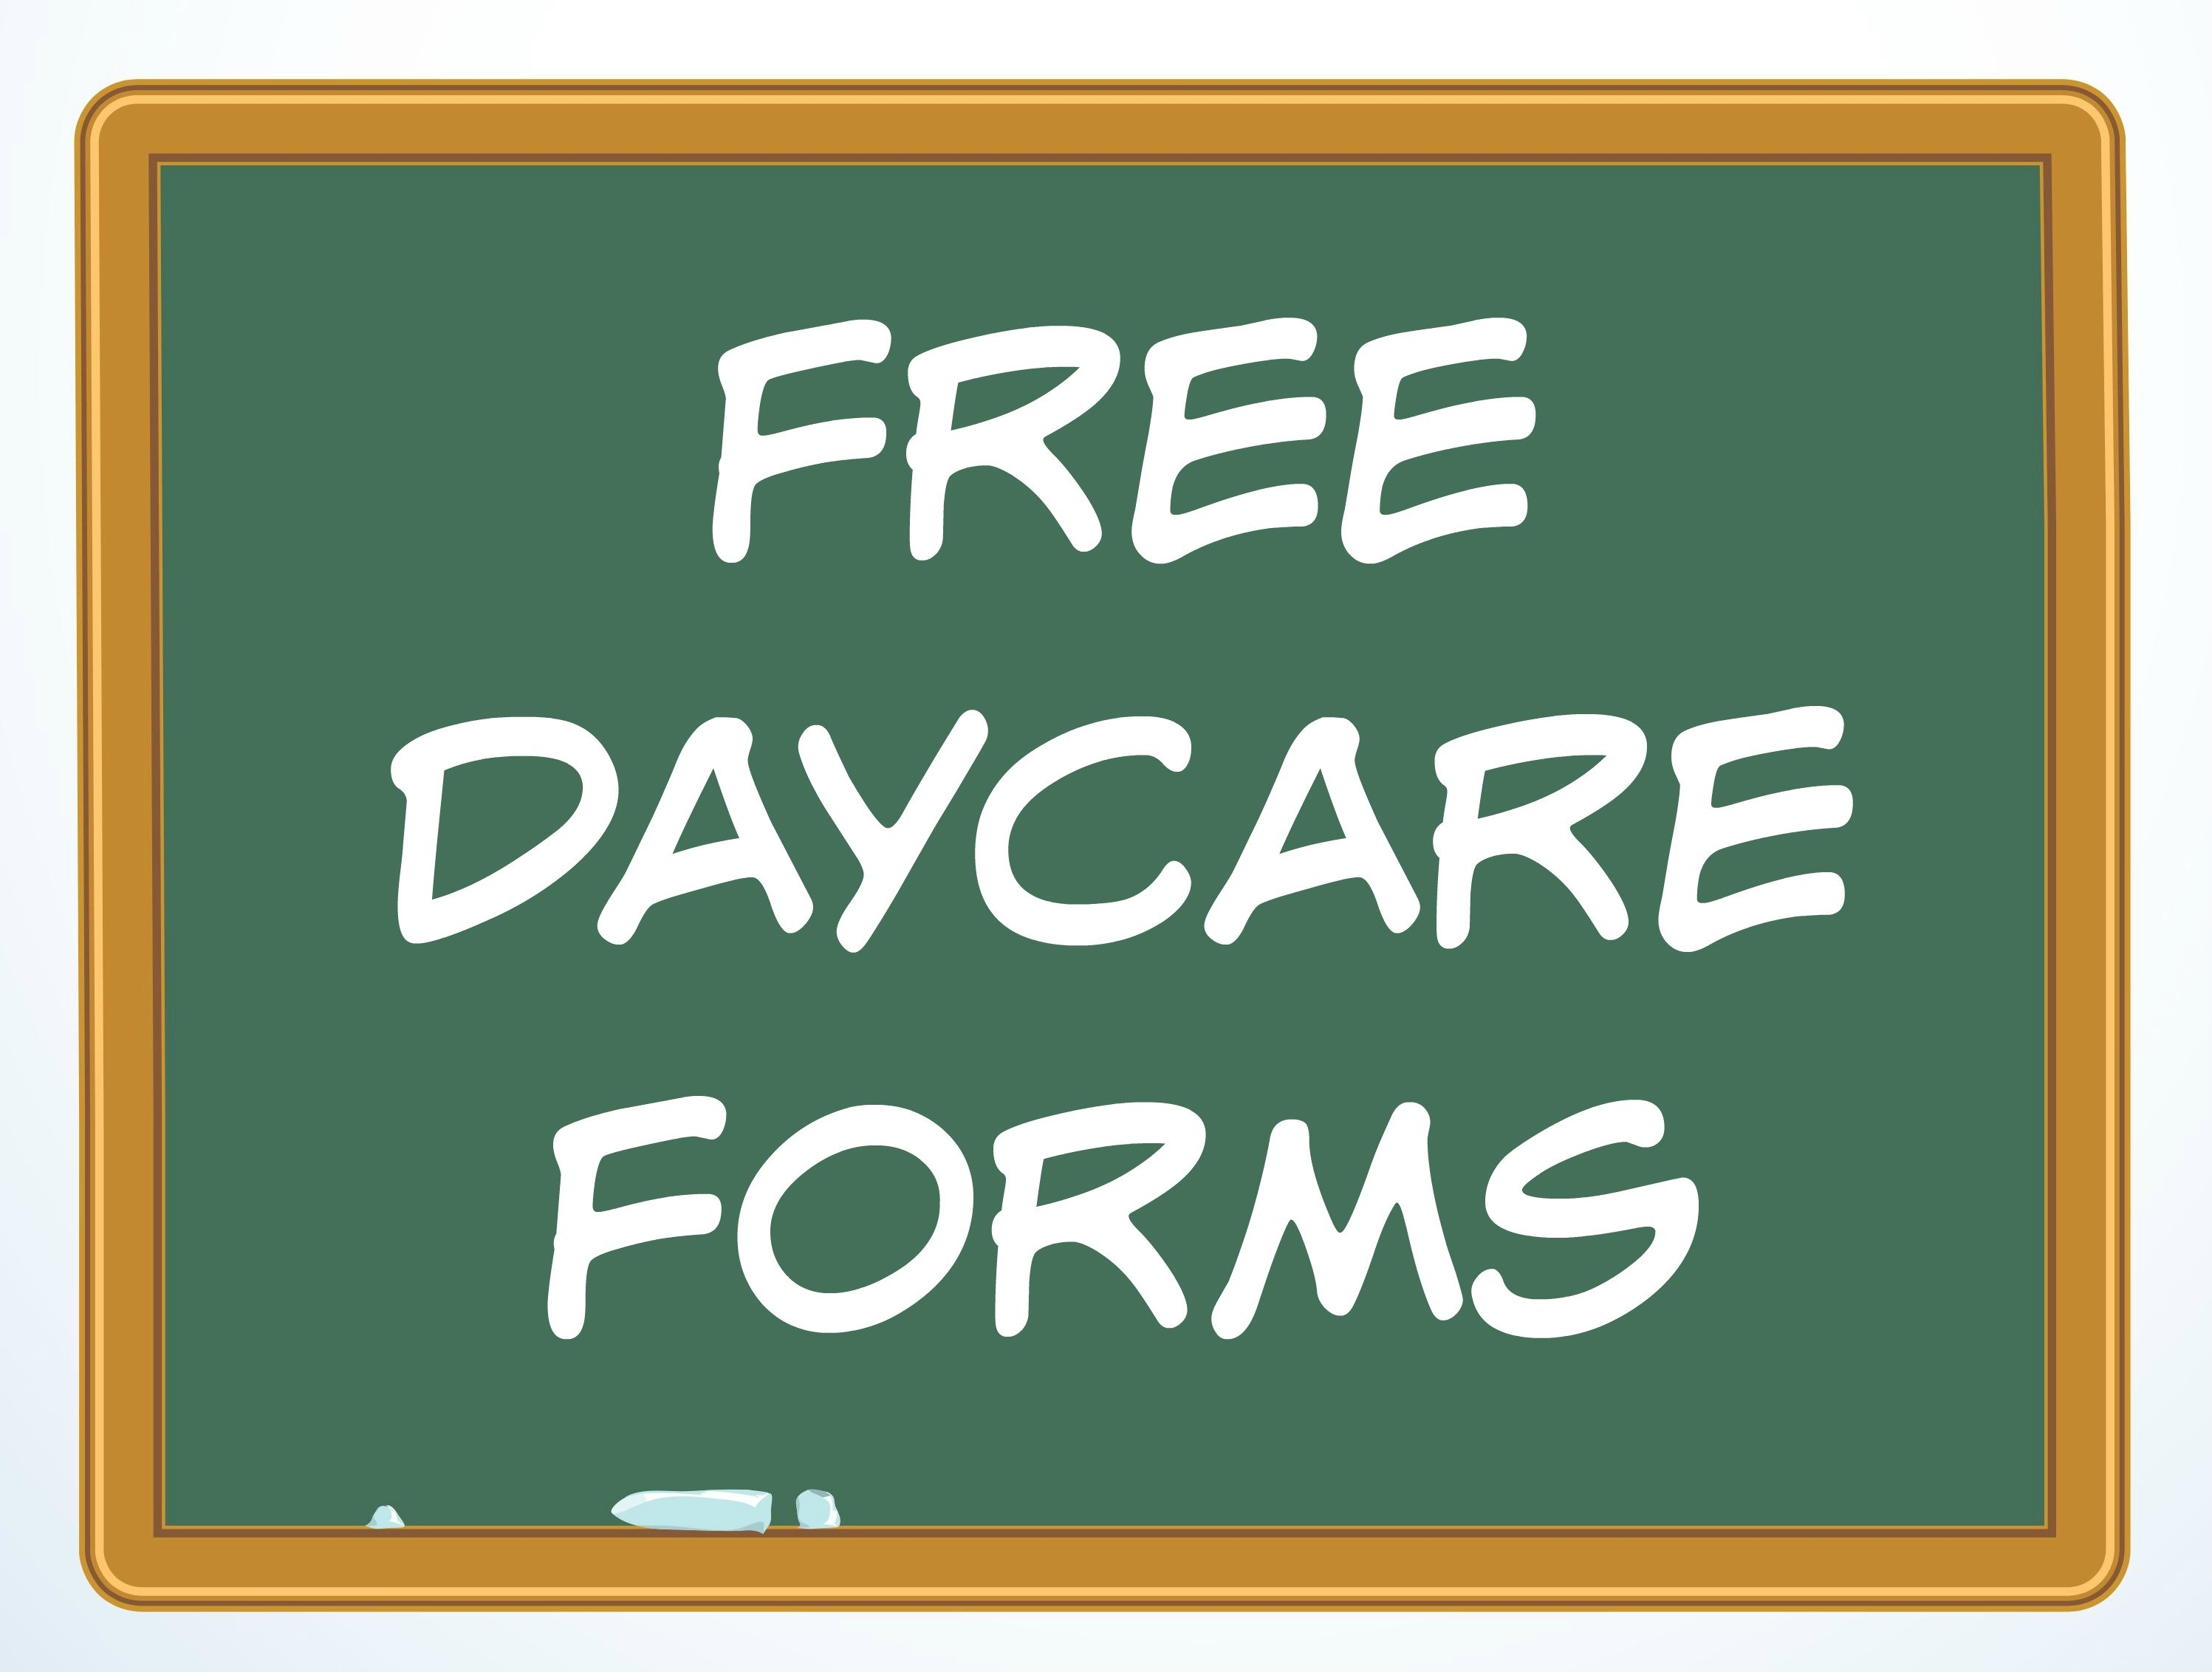 Daycare Payment Spreadsheet For Xfree Daycare Forms Pagespeed Ic Vsfgg16Rog Sample Child Care Rate